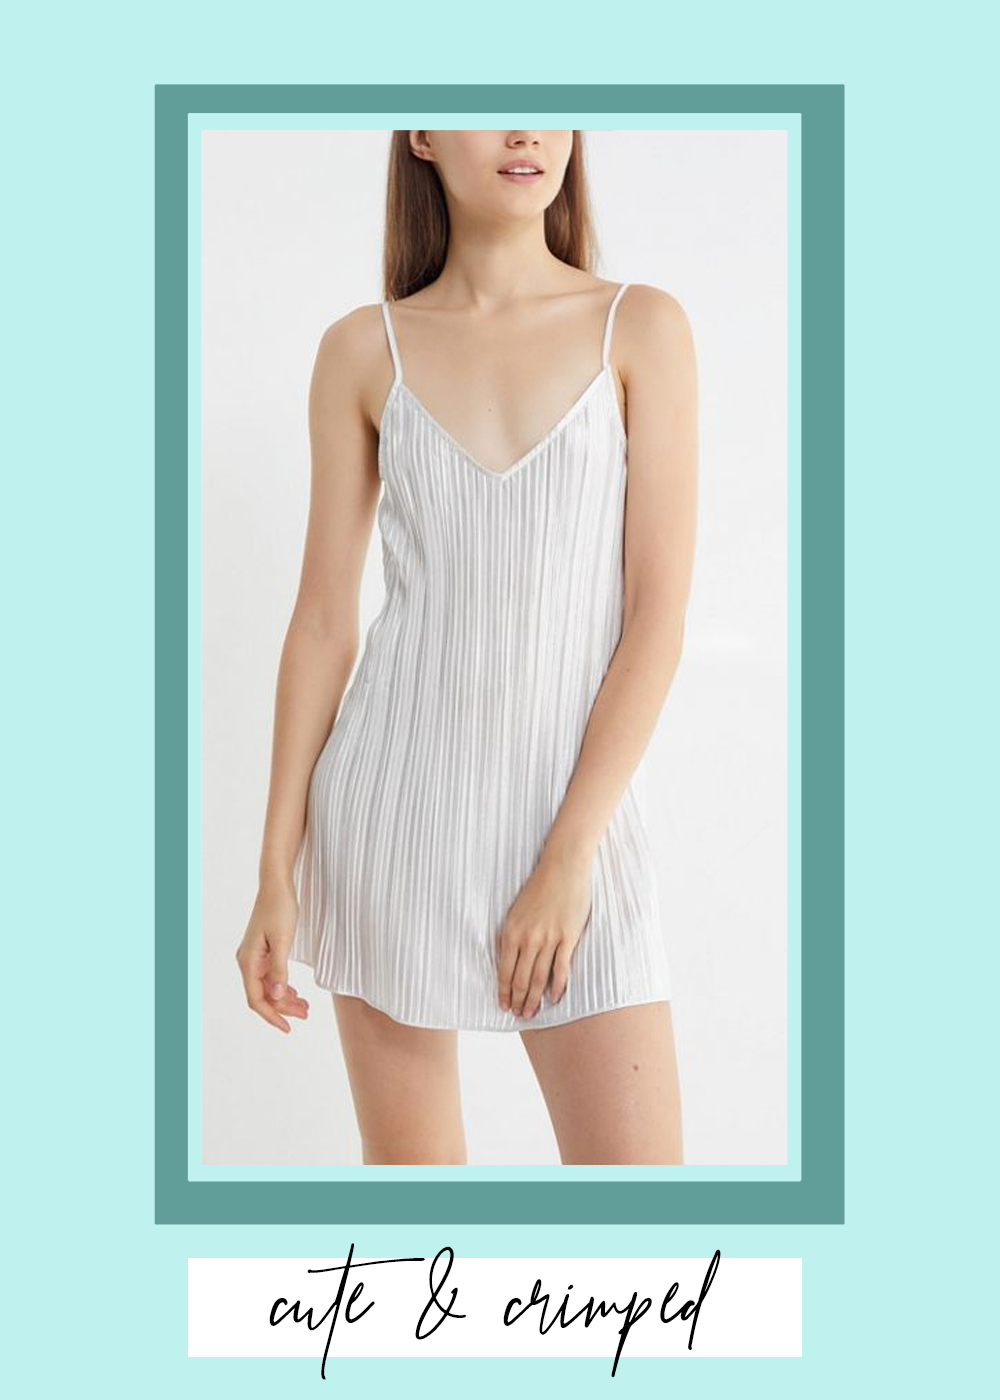 002. - UO Metallic Pleated Slip Mini DressUrban Outfitters // $59